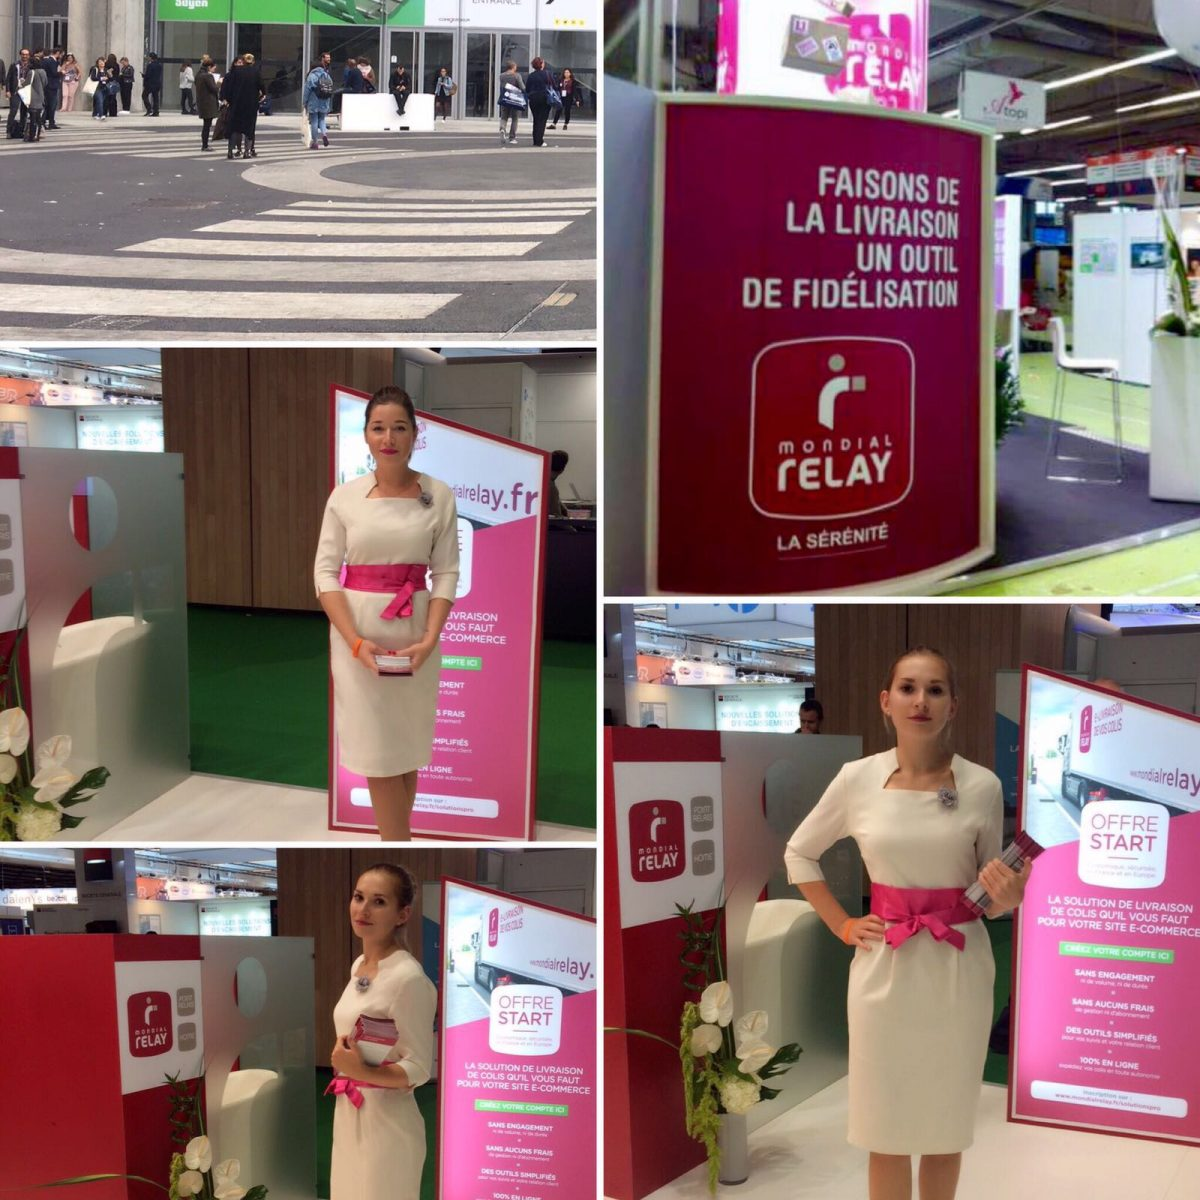 Agence hotesse paris agence d 39 h tesses d 39 accueil salon paris for Salon e commerce paris 2017